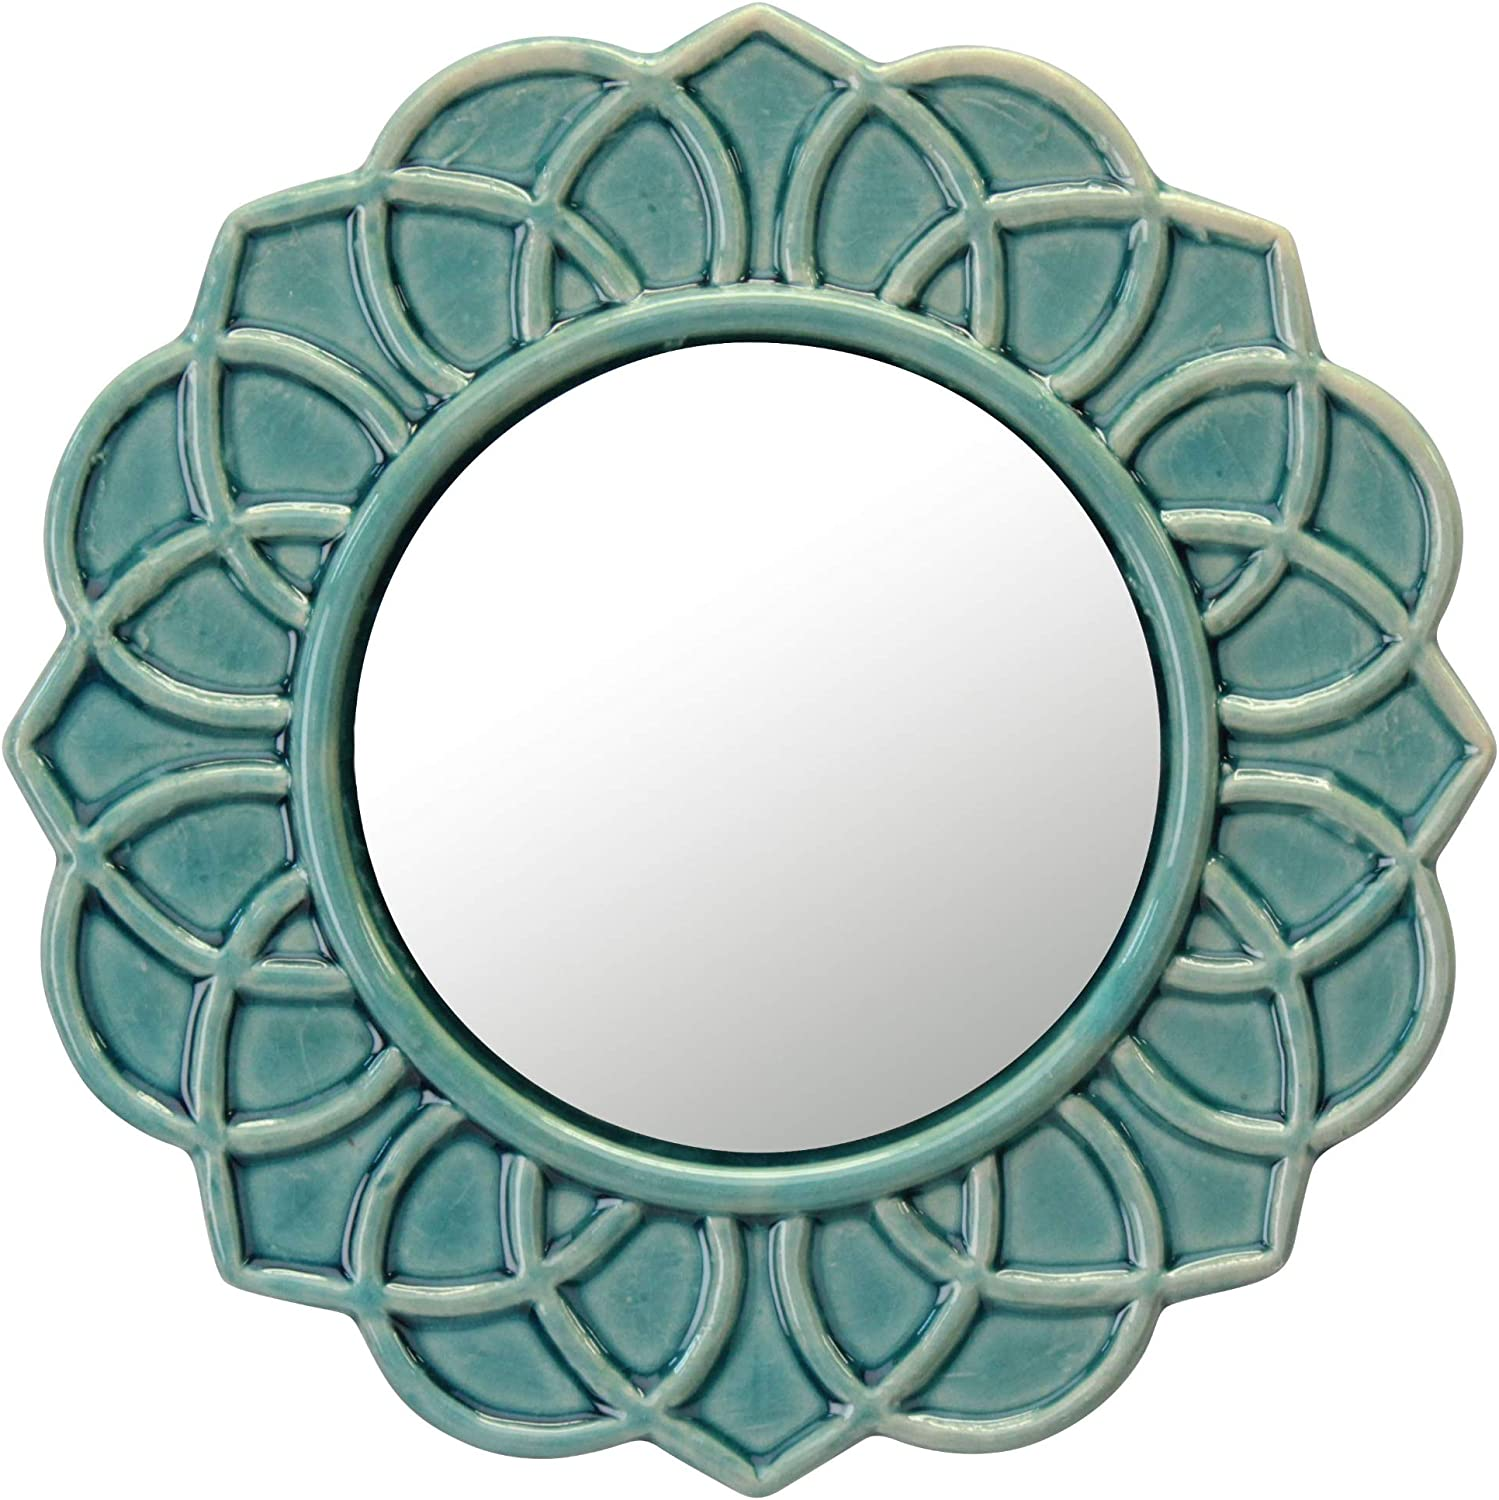 Stonebriar Turquoise Decorative Round Floral Ceramic Wall Hanging Mirror